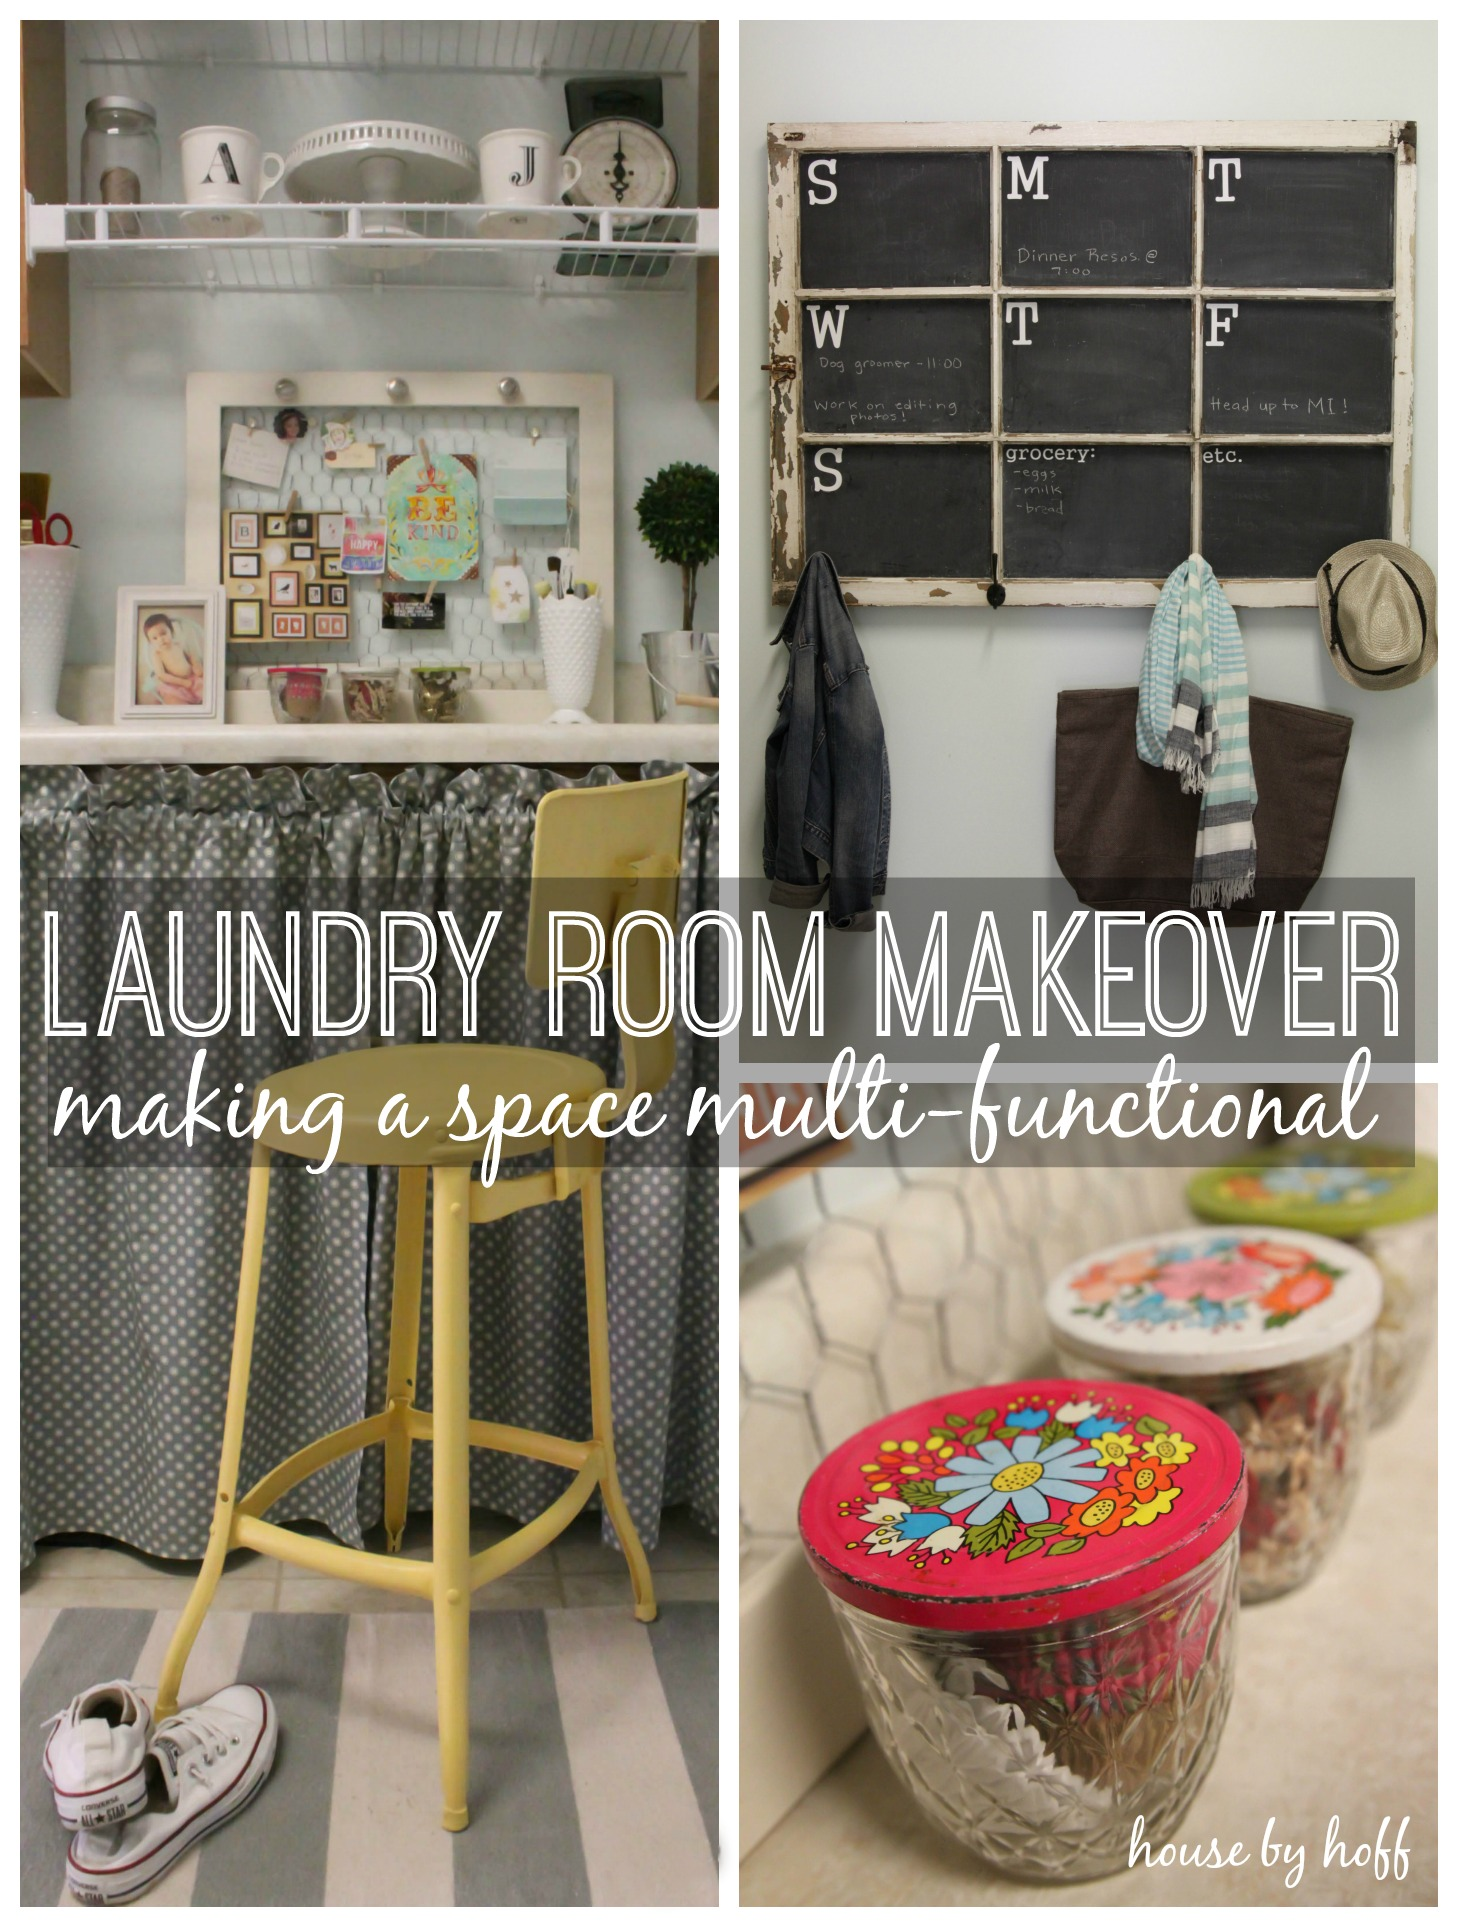 Laundry Room Makeover House by Hoff